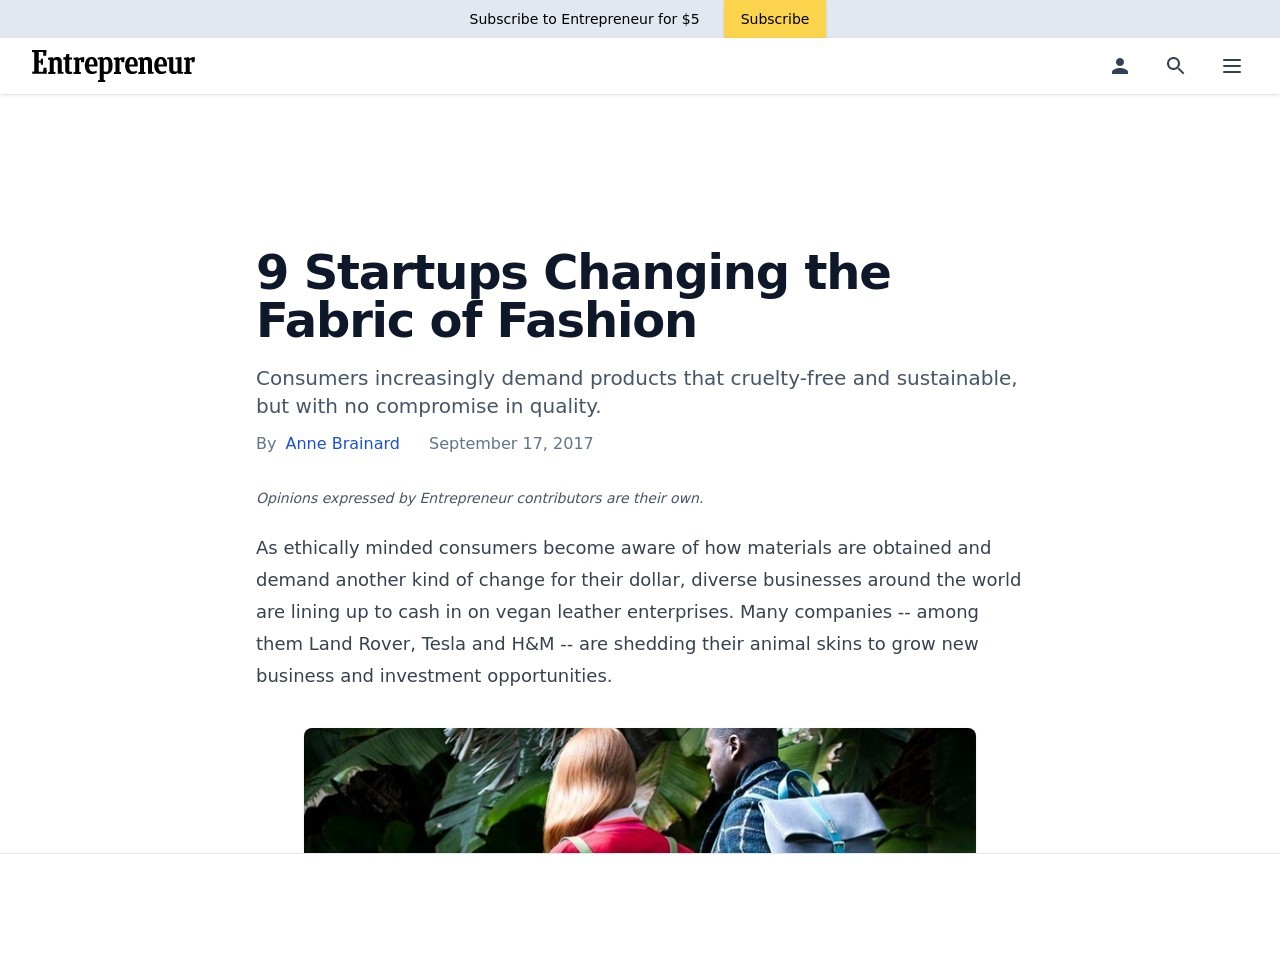 9 Startups Changing the Fabric of Fashion